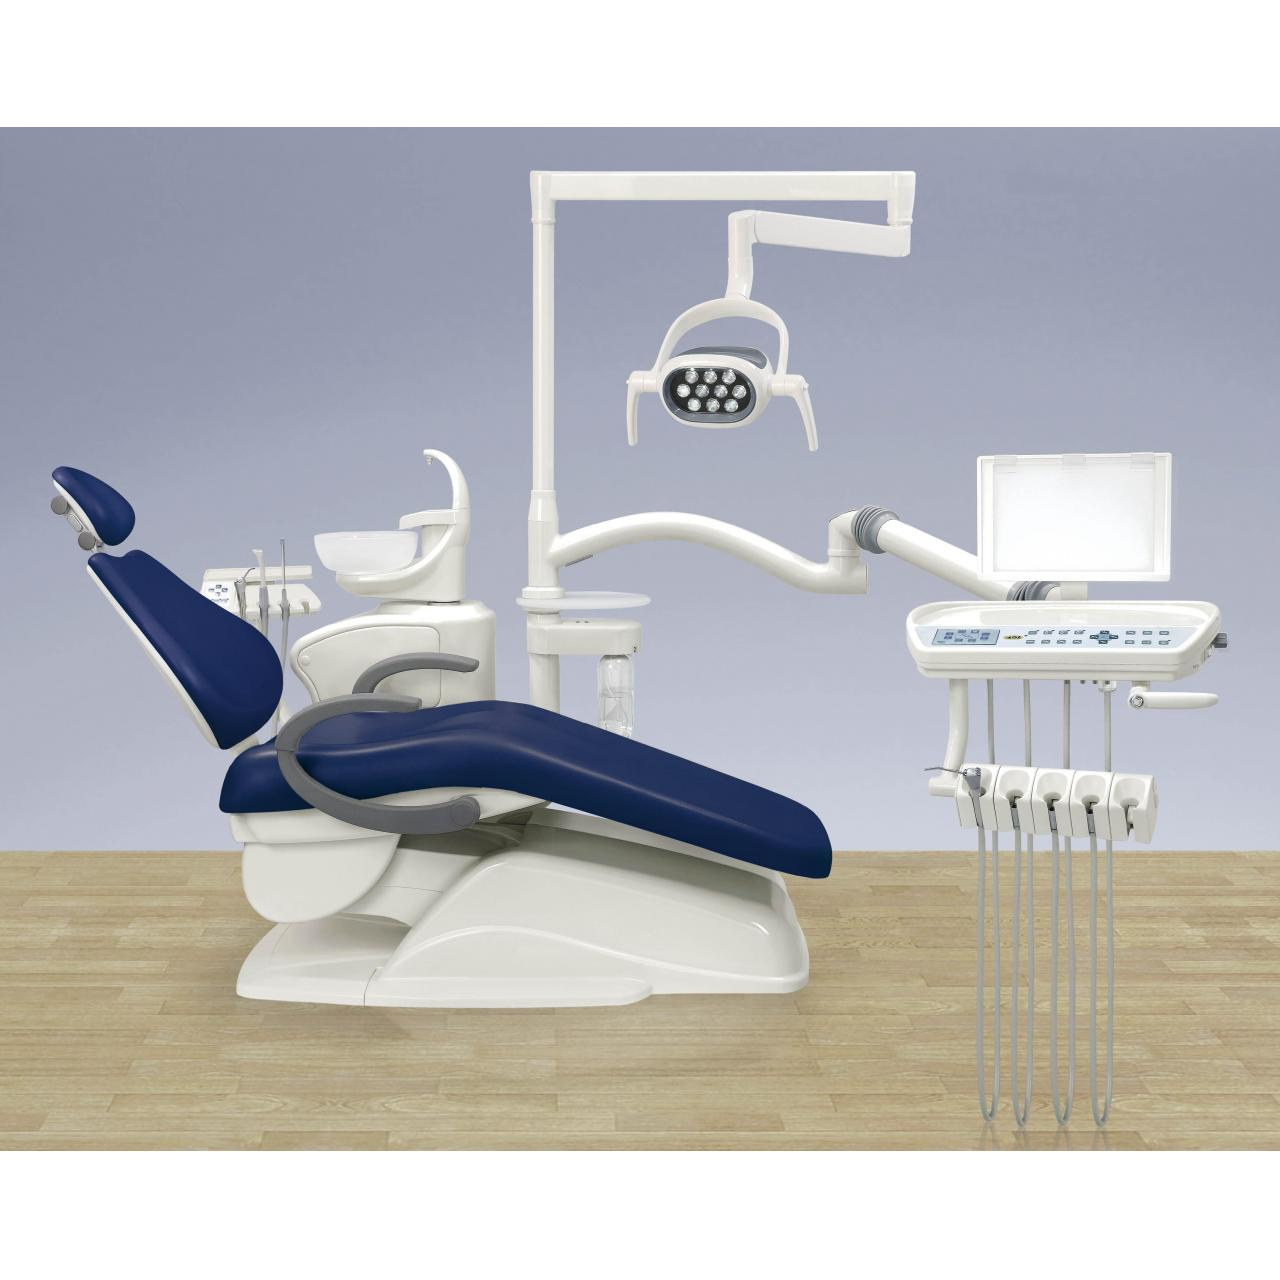 Dental Unit AL-398HA